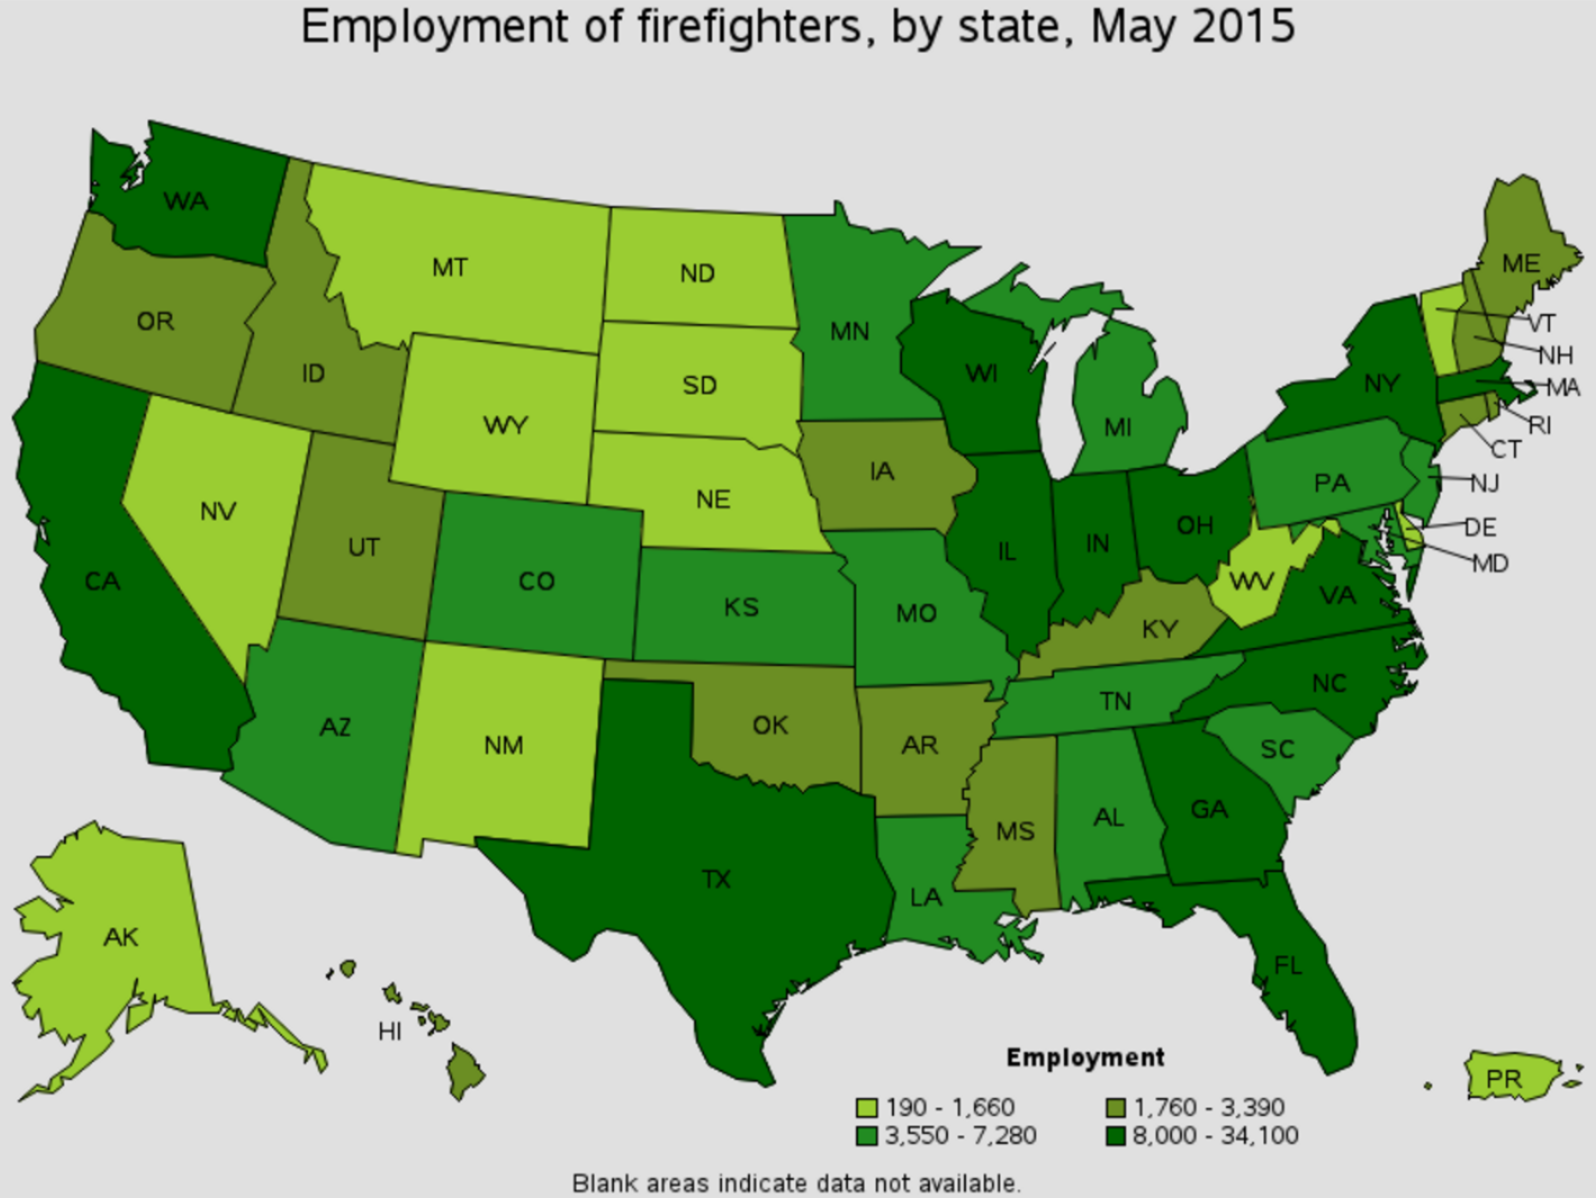 firefighter job outlook by state Willow Springs Missouri